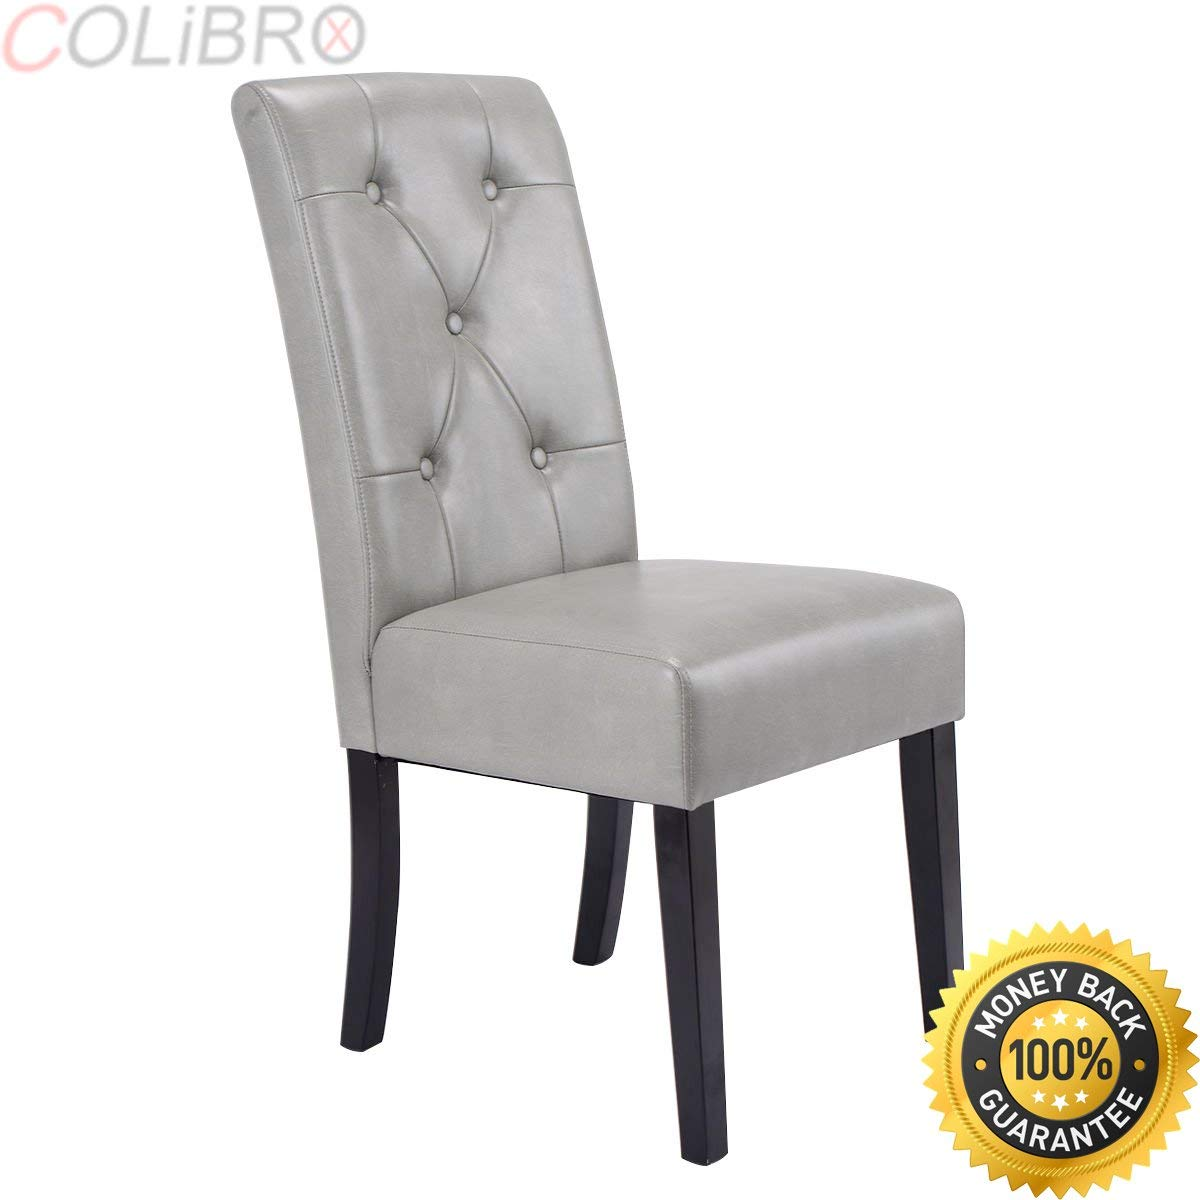 24fc2fc8790a Get Quotations · COLIBROX--Set of 2 Dining Chairs Tufted PU Leather High  Back Armless Accent Home